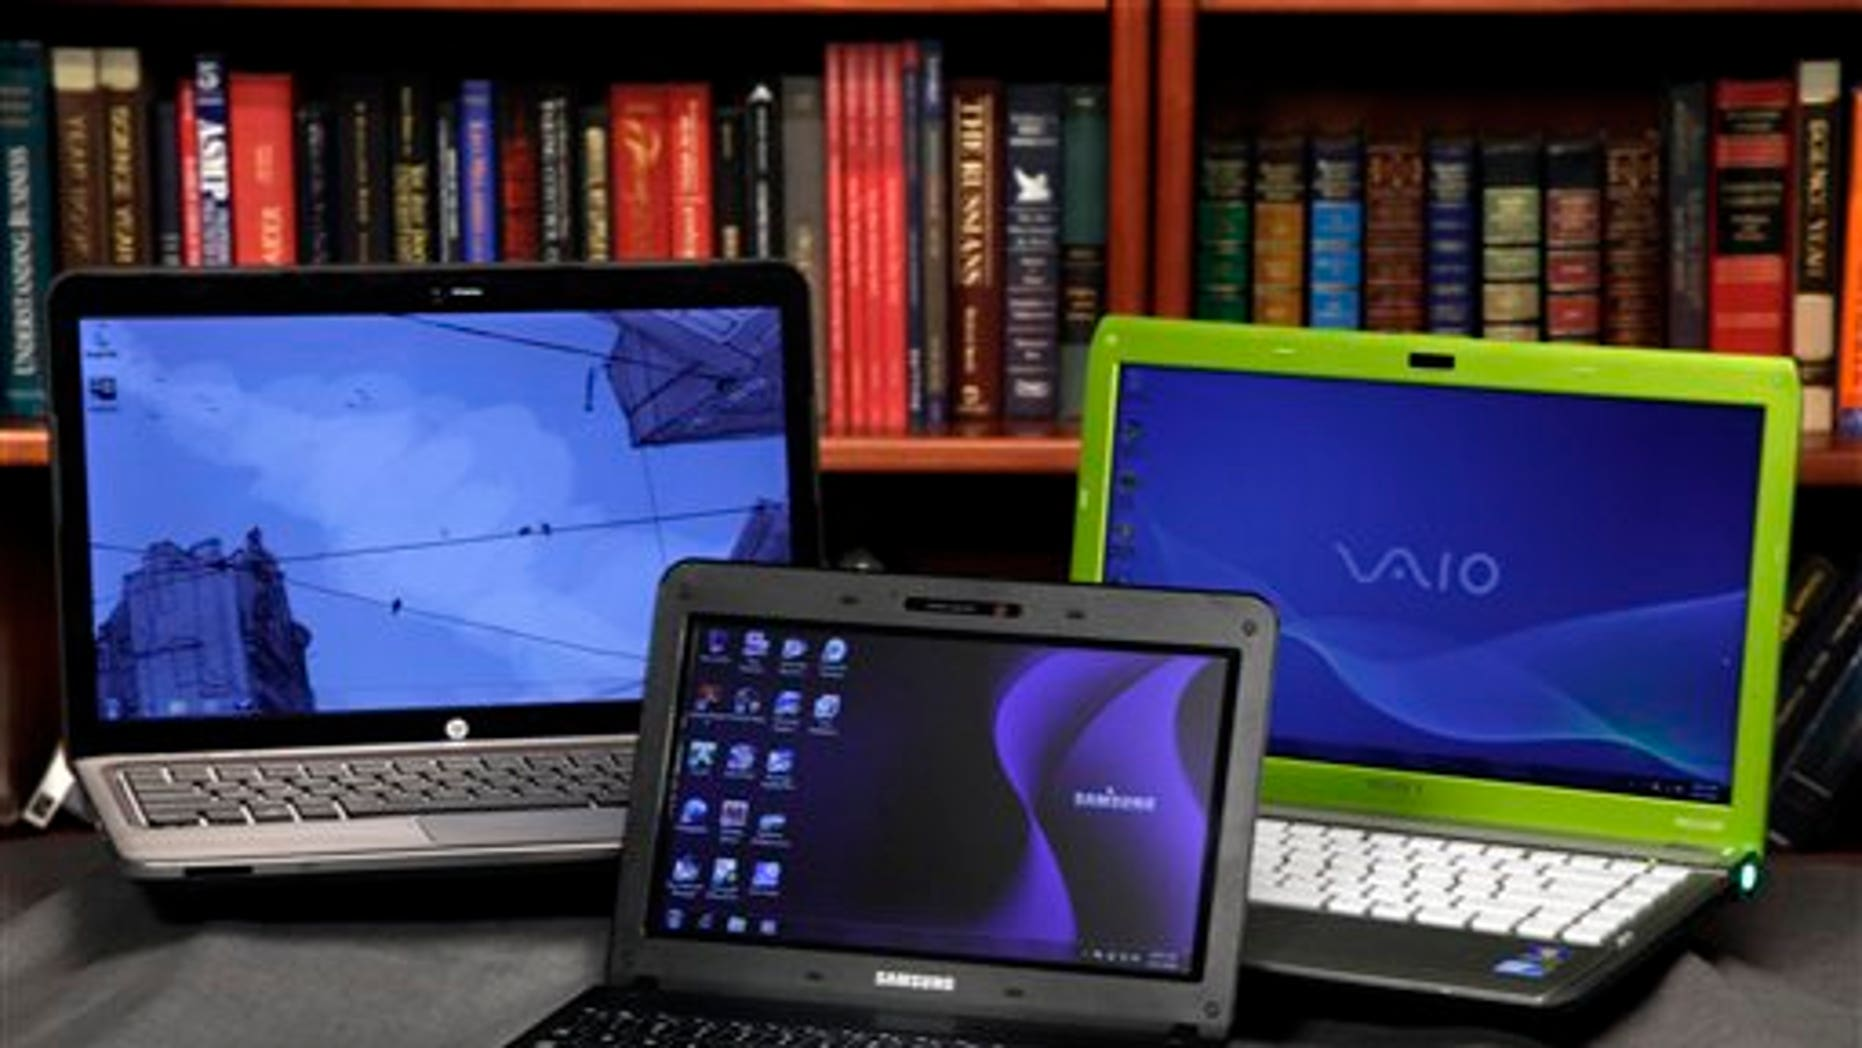 The HP Pavilion dm4, left, the Sony Vaio, right, laptops and the Samsung NB30 netbook are shown in this photo, in New York, Wednesday, Aug. 11, 2010.